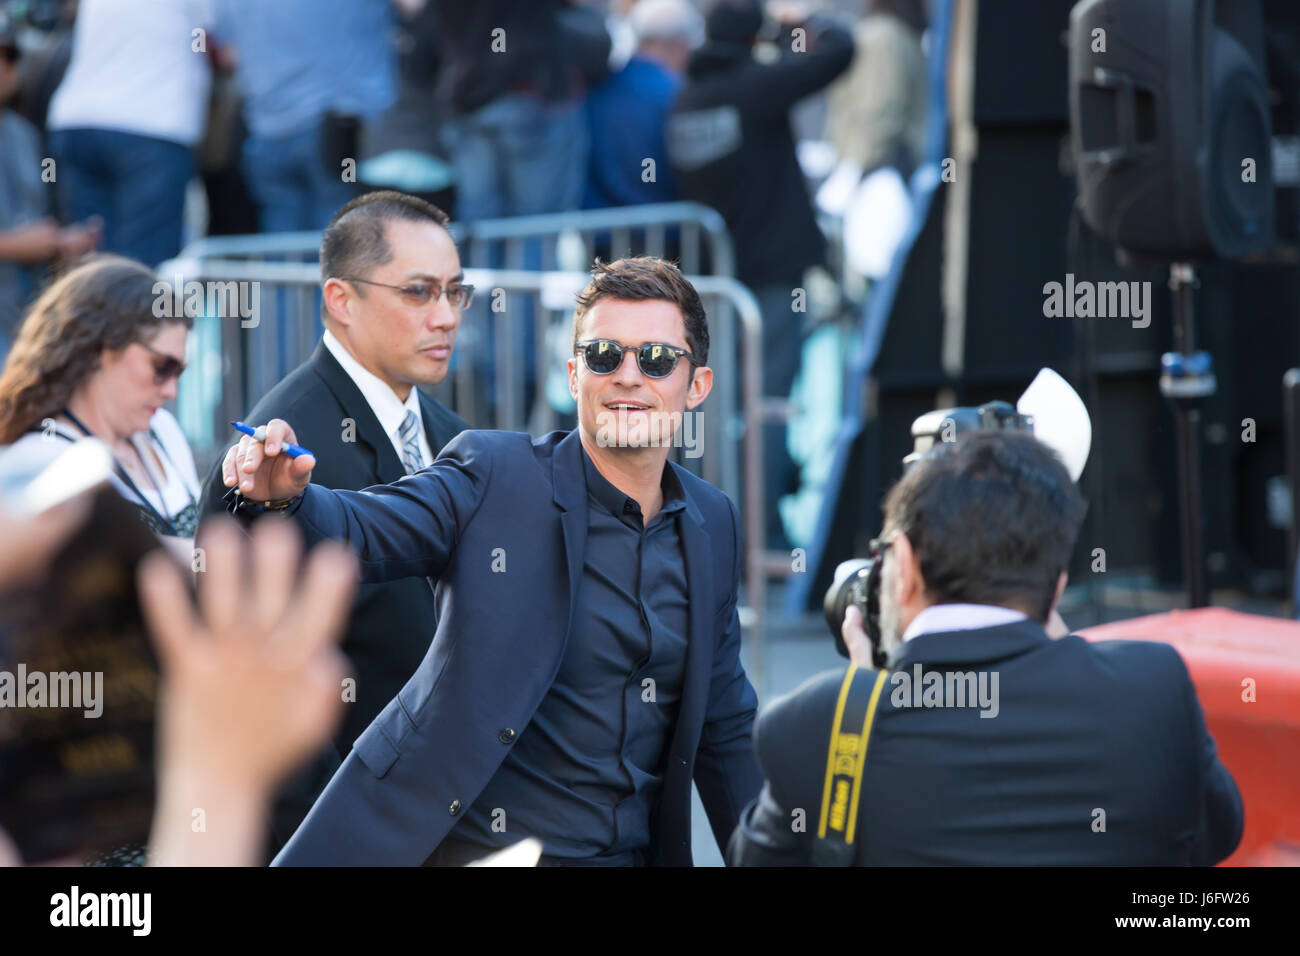 Actor Orlando Bloom attends premiere Disney's 'Pirates Caribbean: Dead Men Tell No Tales' Dolby Theatre - Stock Image